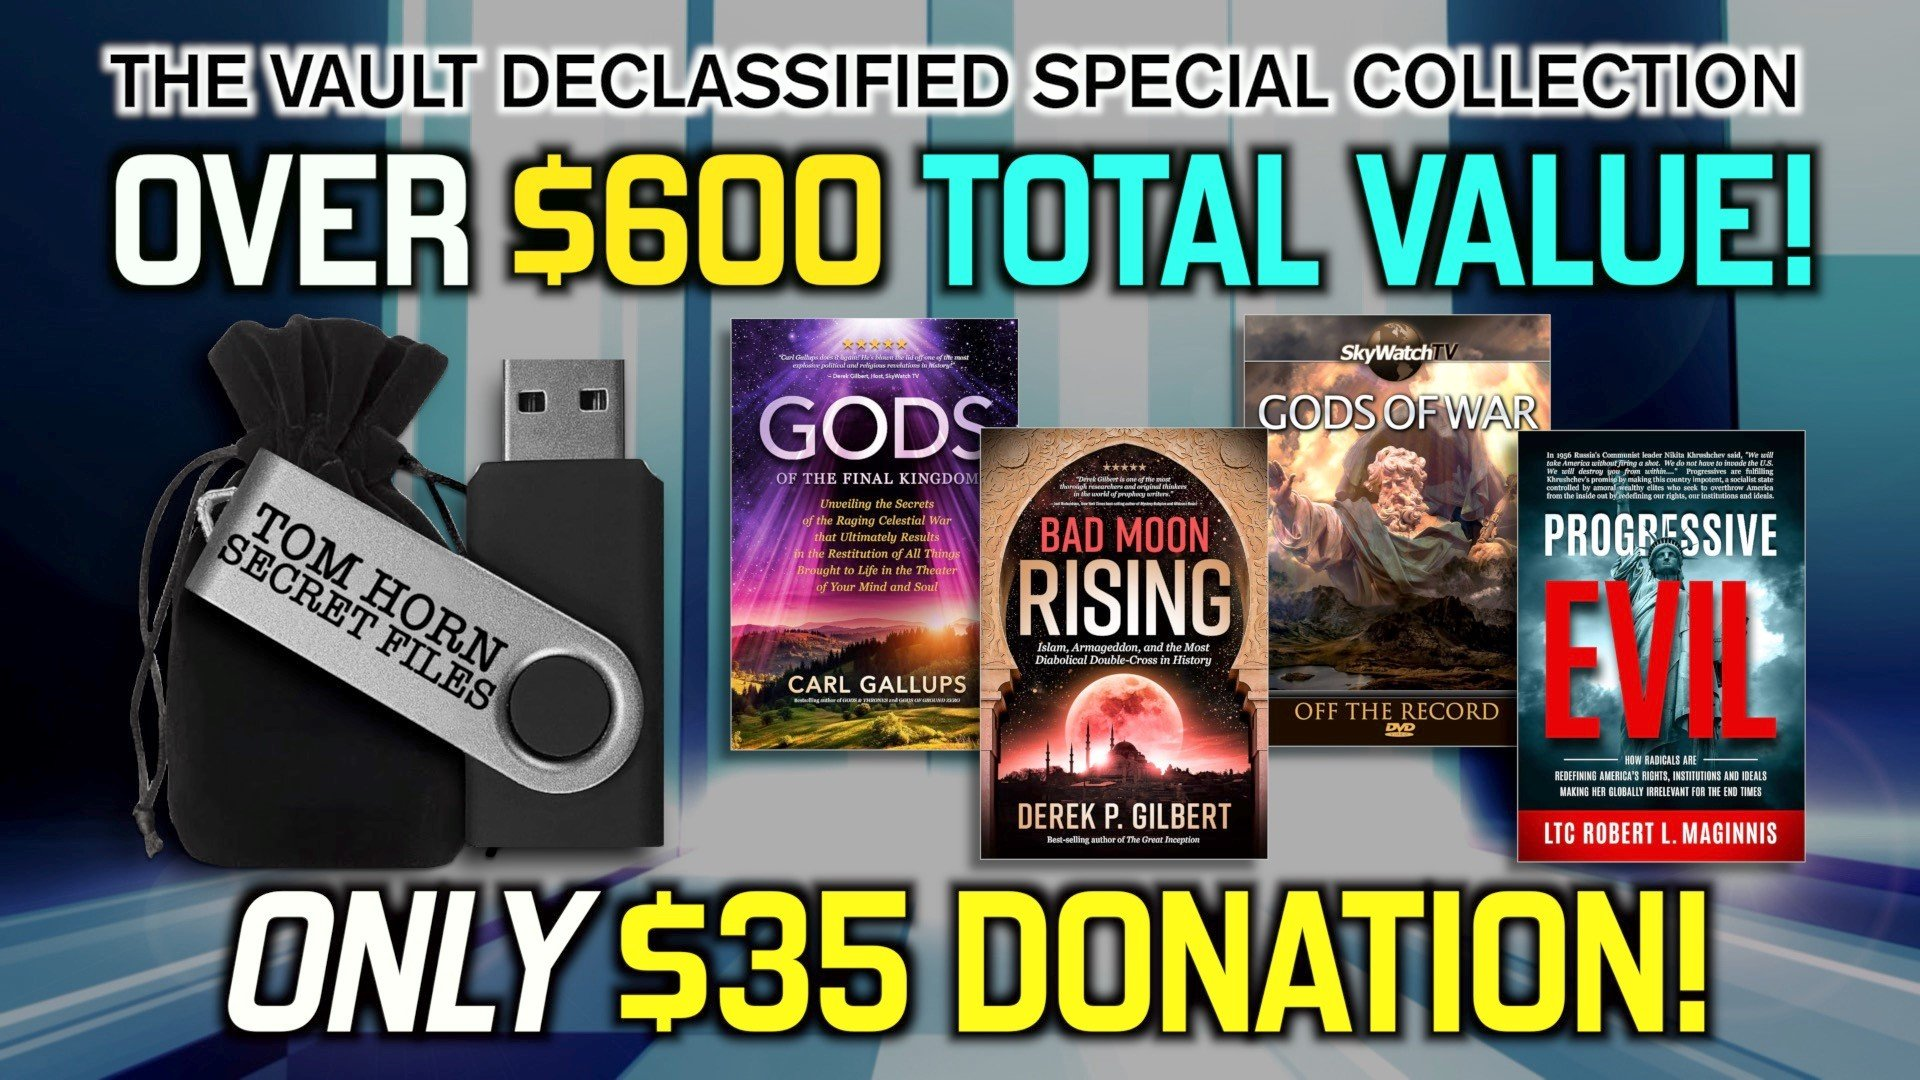 "FREE! RECEIVE TOM HORN'S ""TOP-SECRET FILES"" & OTHER GIFTS WITH NEW BLOCKBUSTER RELEASES!"